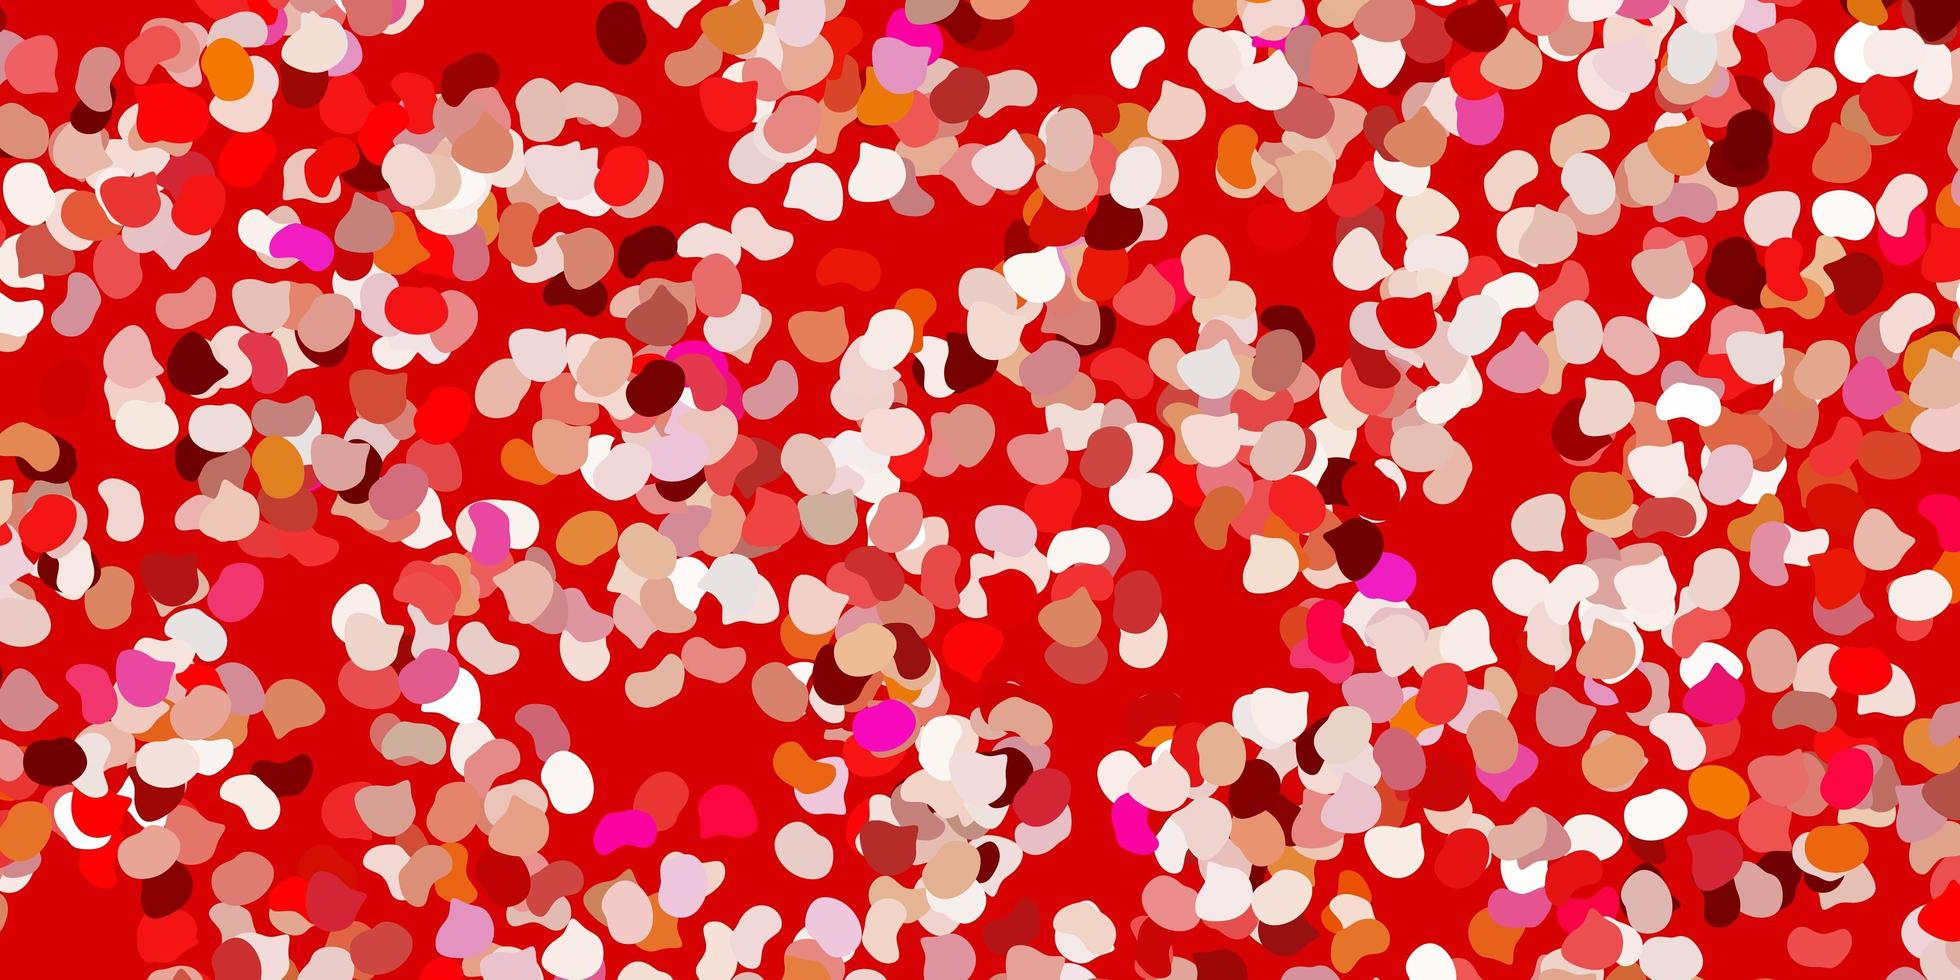 Light red background with random forms. vector